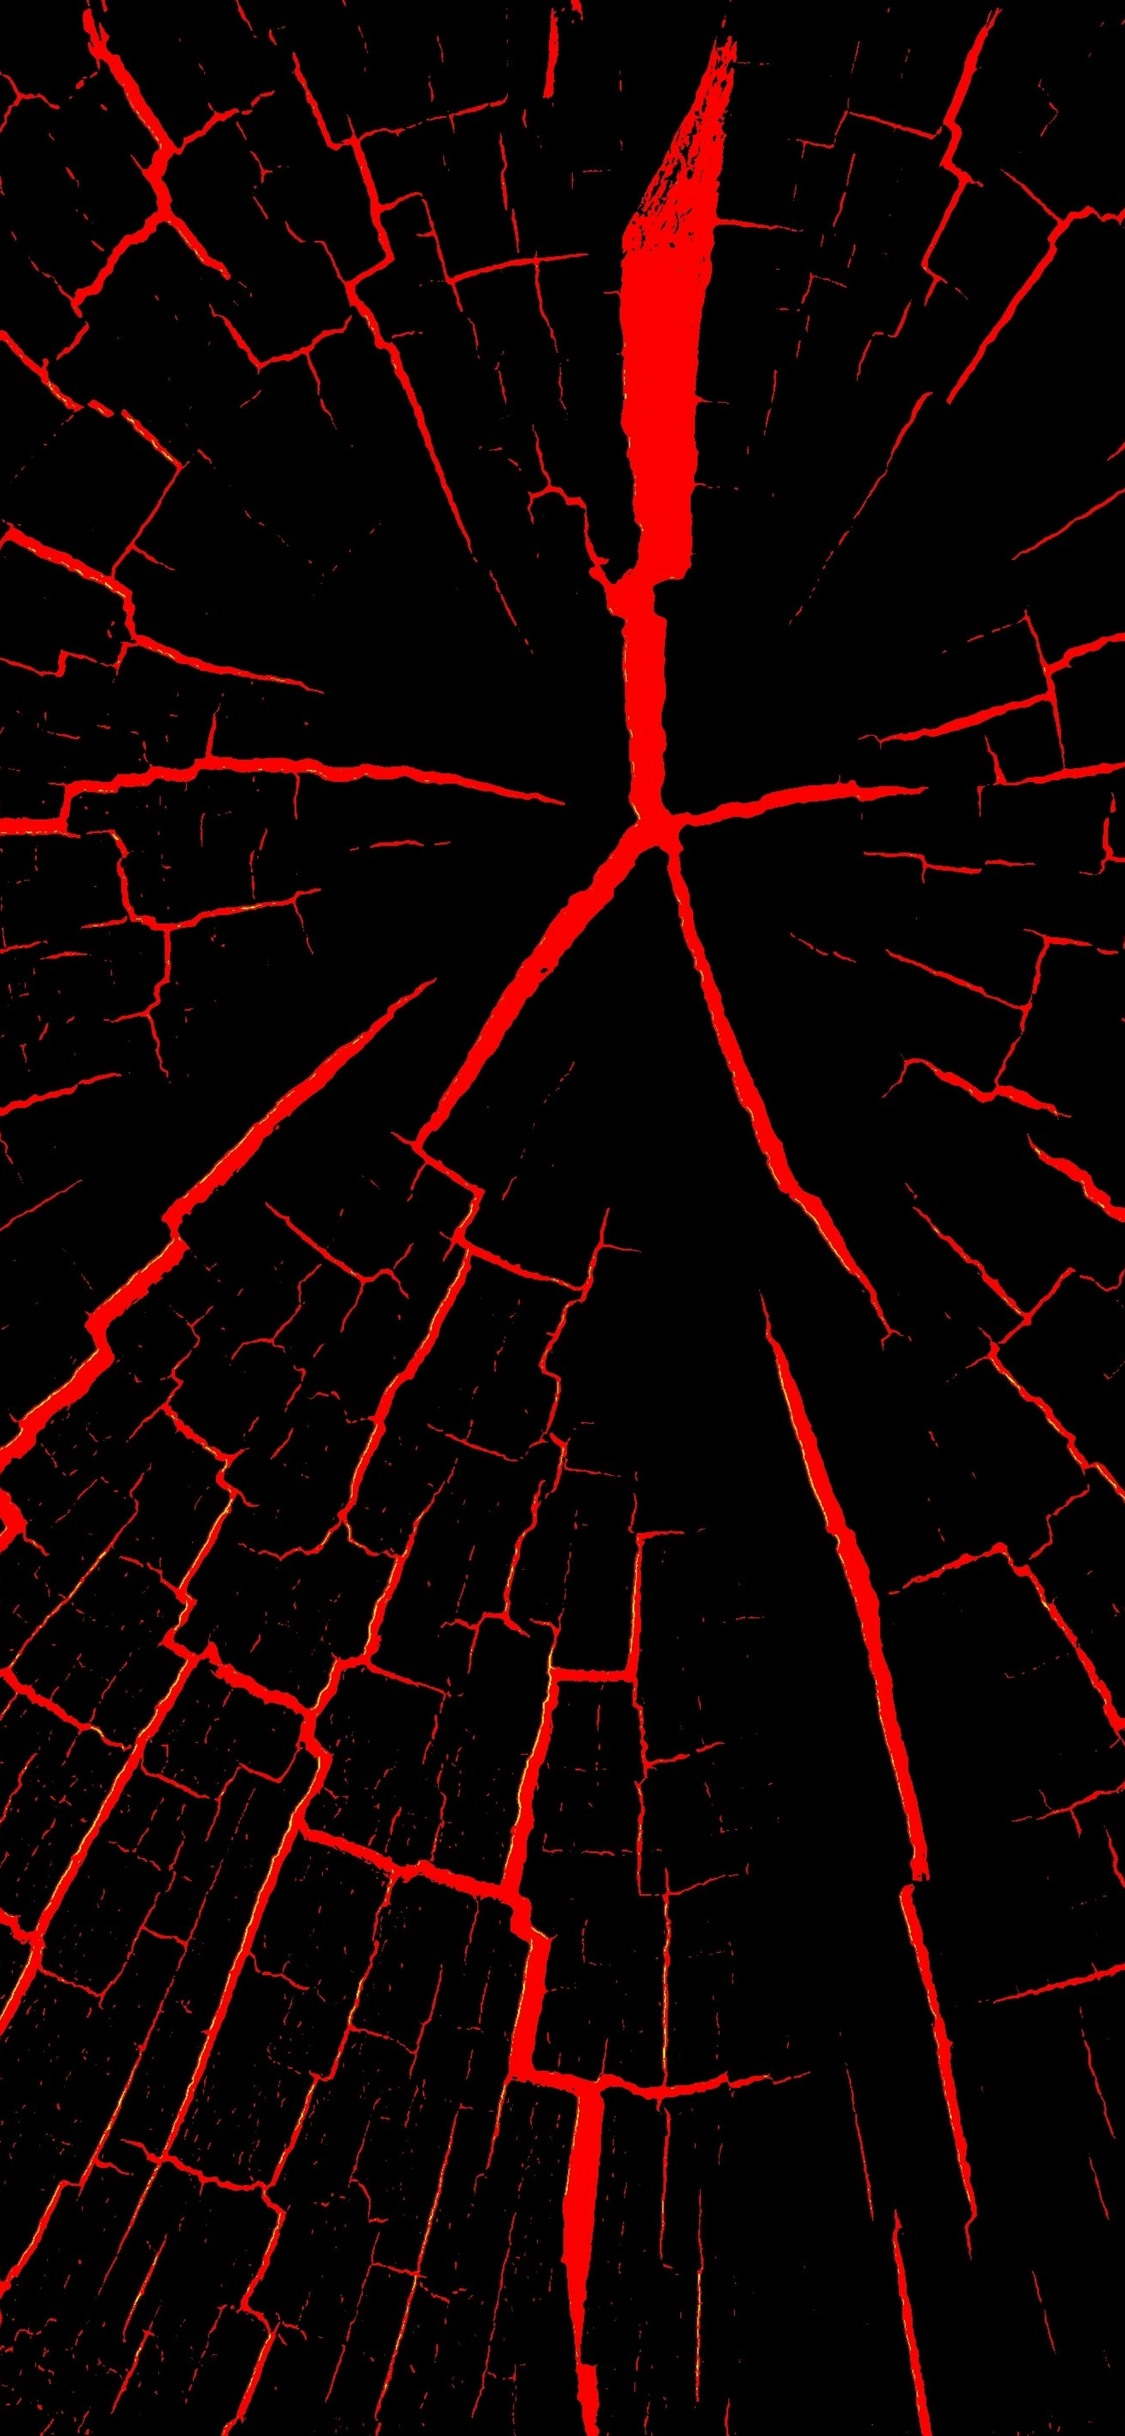 Cracks Black And Red Abstract 1242x2688 Iphone 11 Pro Xs Max Wallpaper Background Picture Image